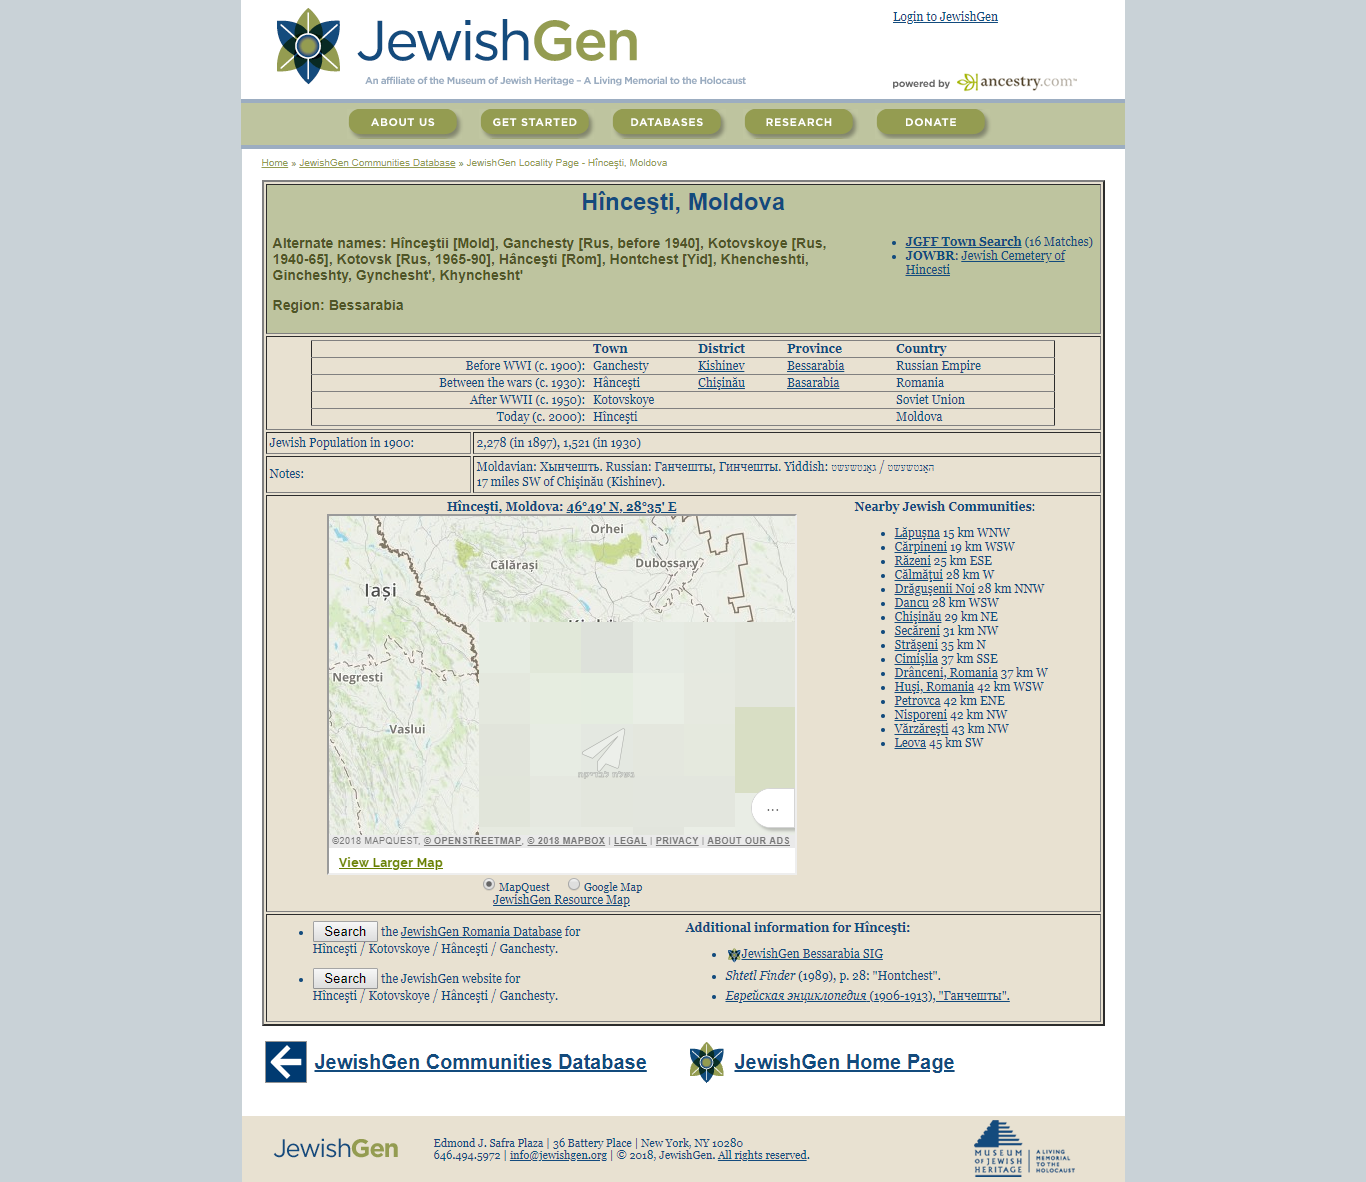 screencapture-jewishgen-org-Communities-community-php-2018-11-04-21_04_06.png